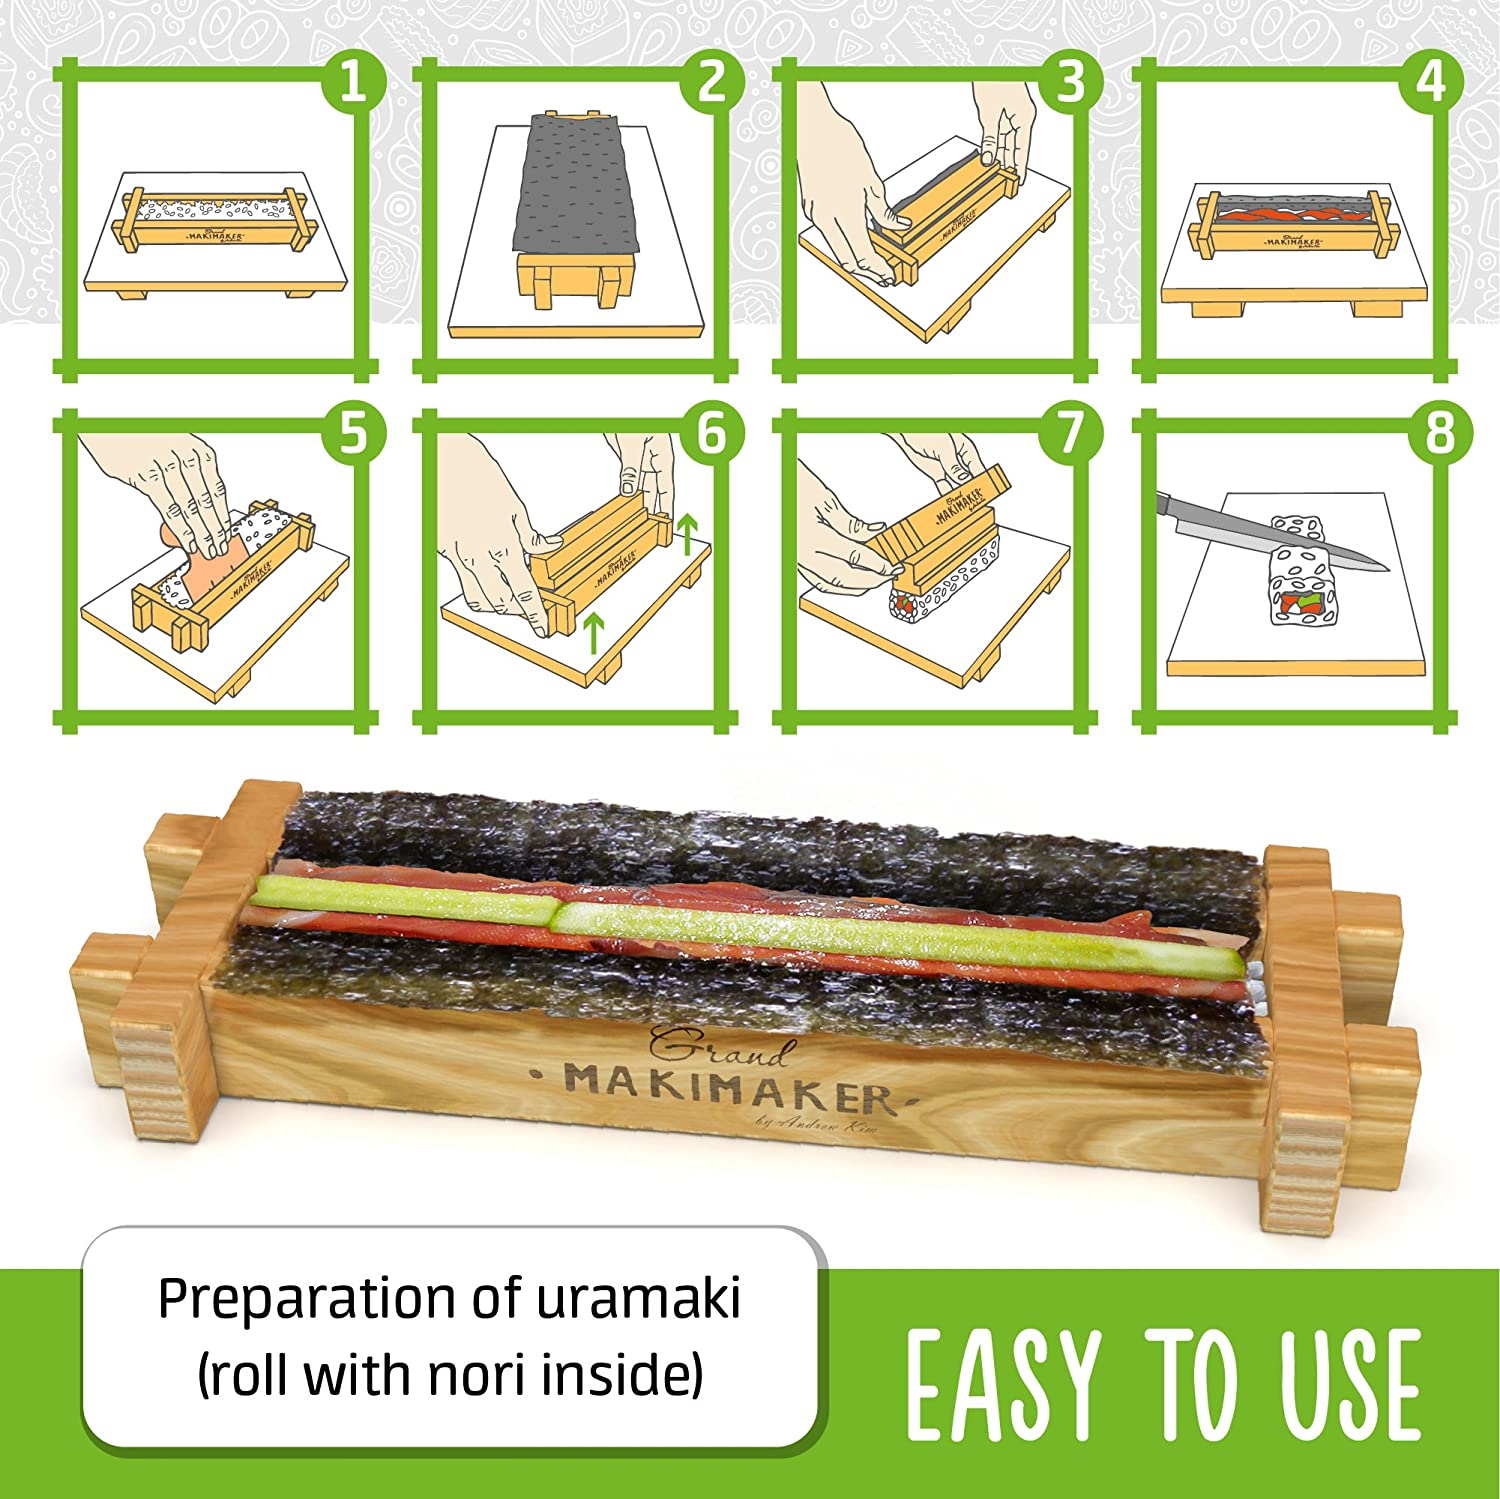 Sushi Making Kit by iSottcom Makimaker Grand Japanese Sushi and Rolls at Home with Easy Sushi Press Sushi Maker Your Best Professional Quick Sushi Making Set Sushi Kit for Chef and Beginners